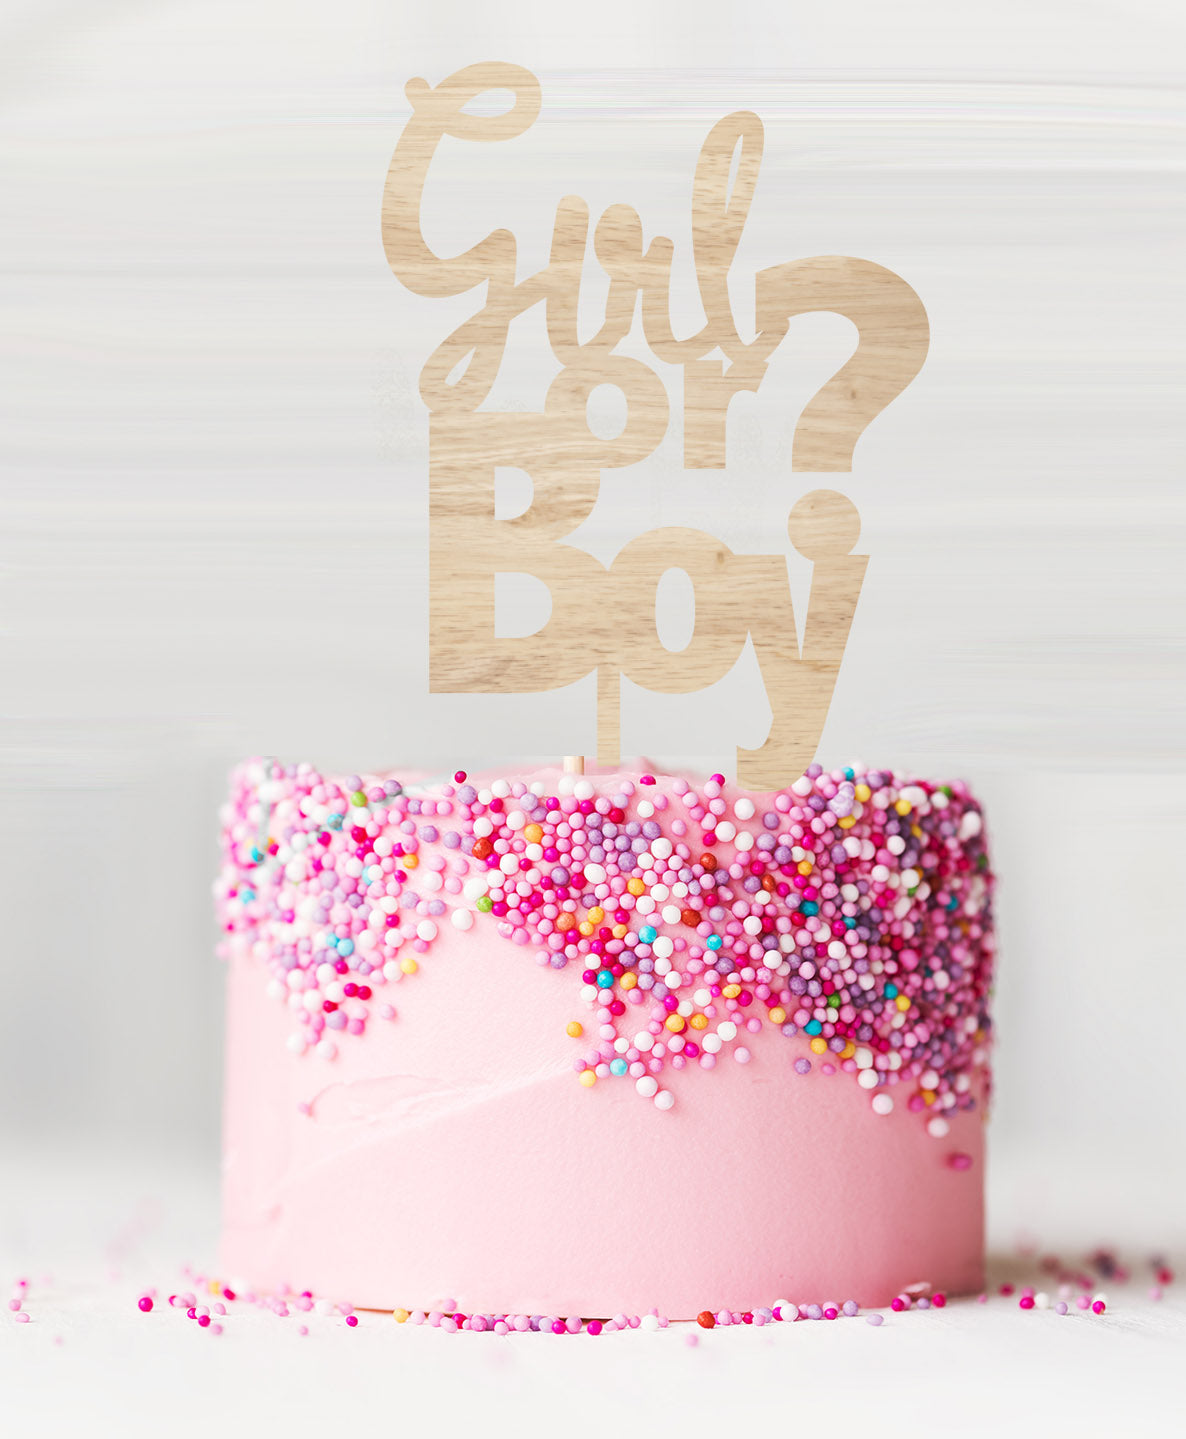 /'Baby Girl/' Bright Pink Glitter Cake Topper Baby Shower Cake Topper Decoration